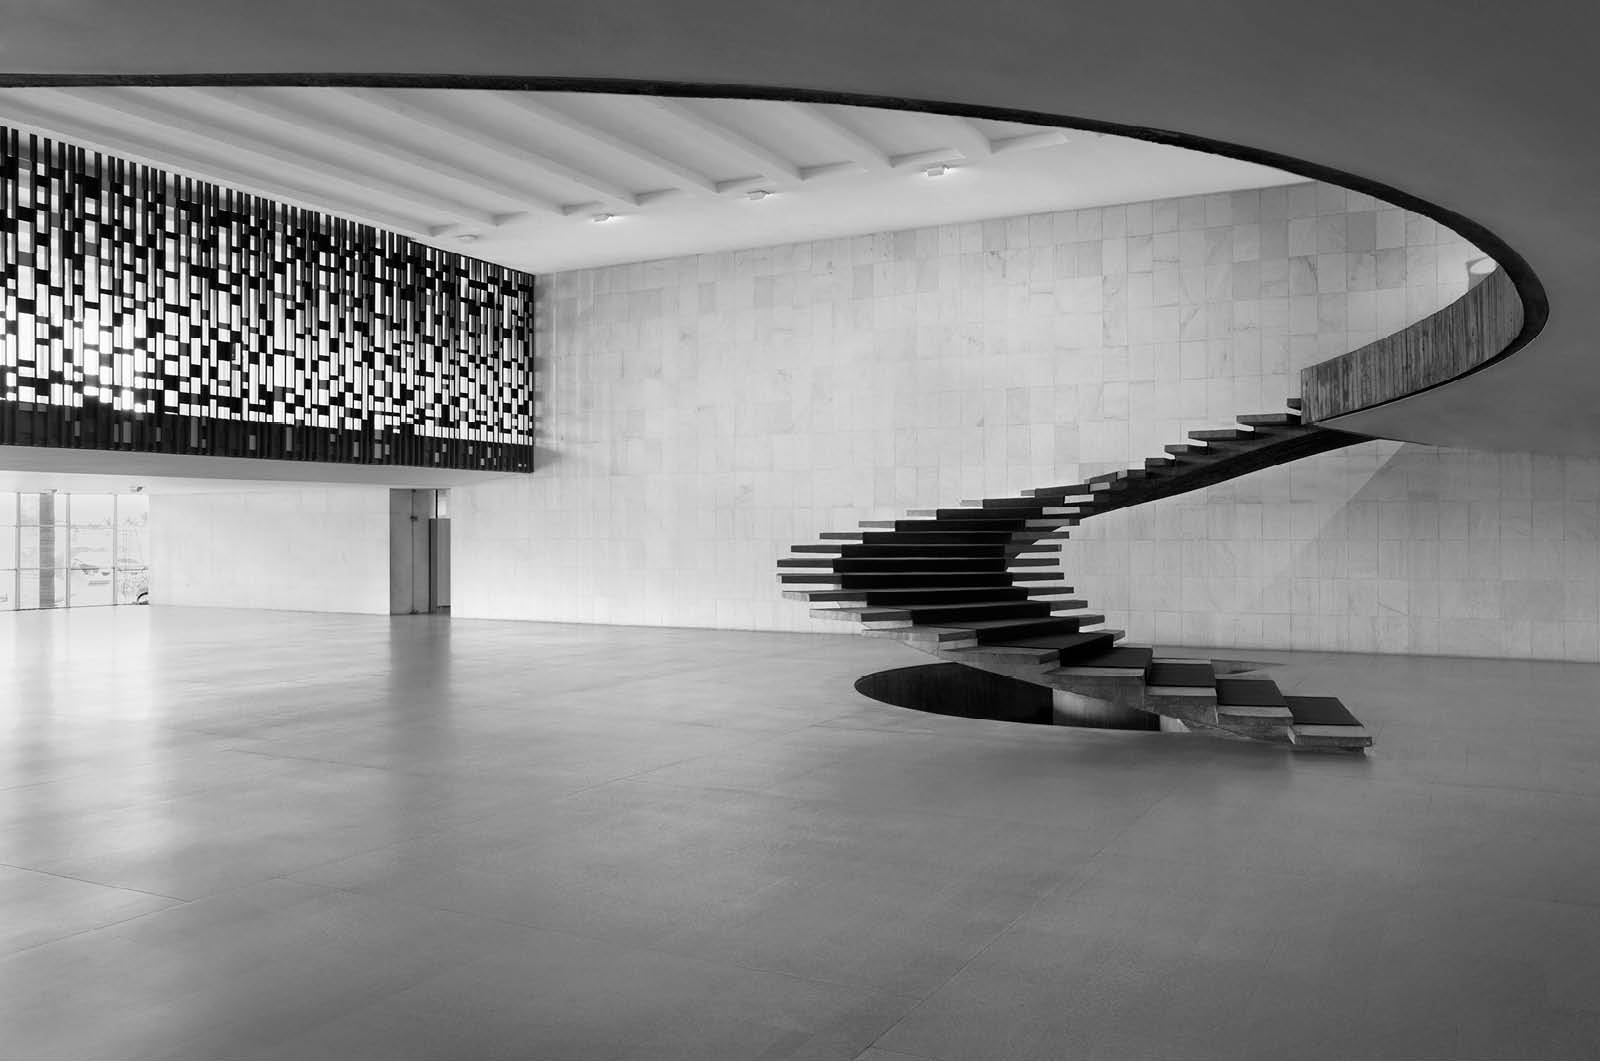 Staircase at the Itamaraty Palace, 2011